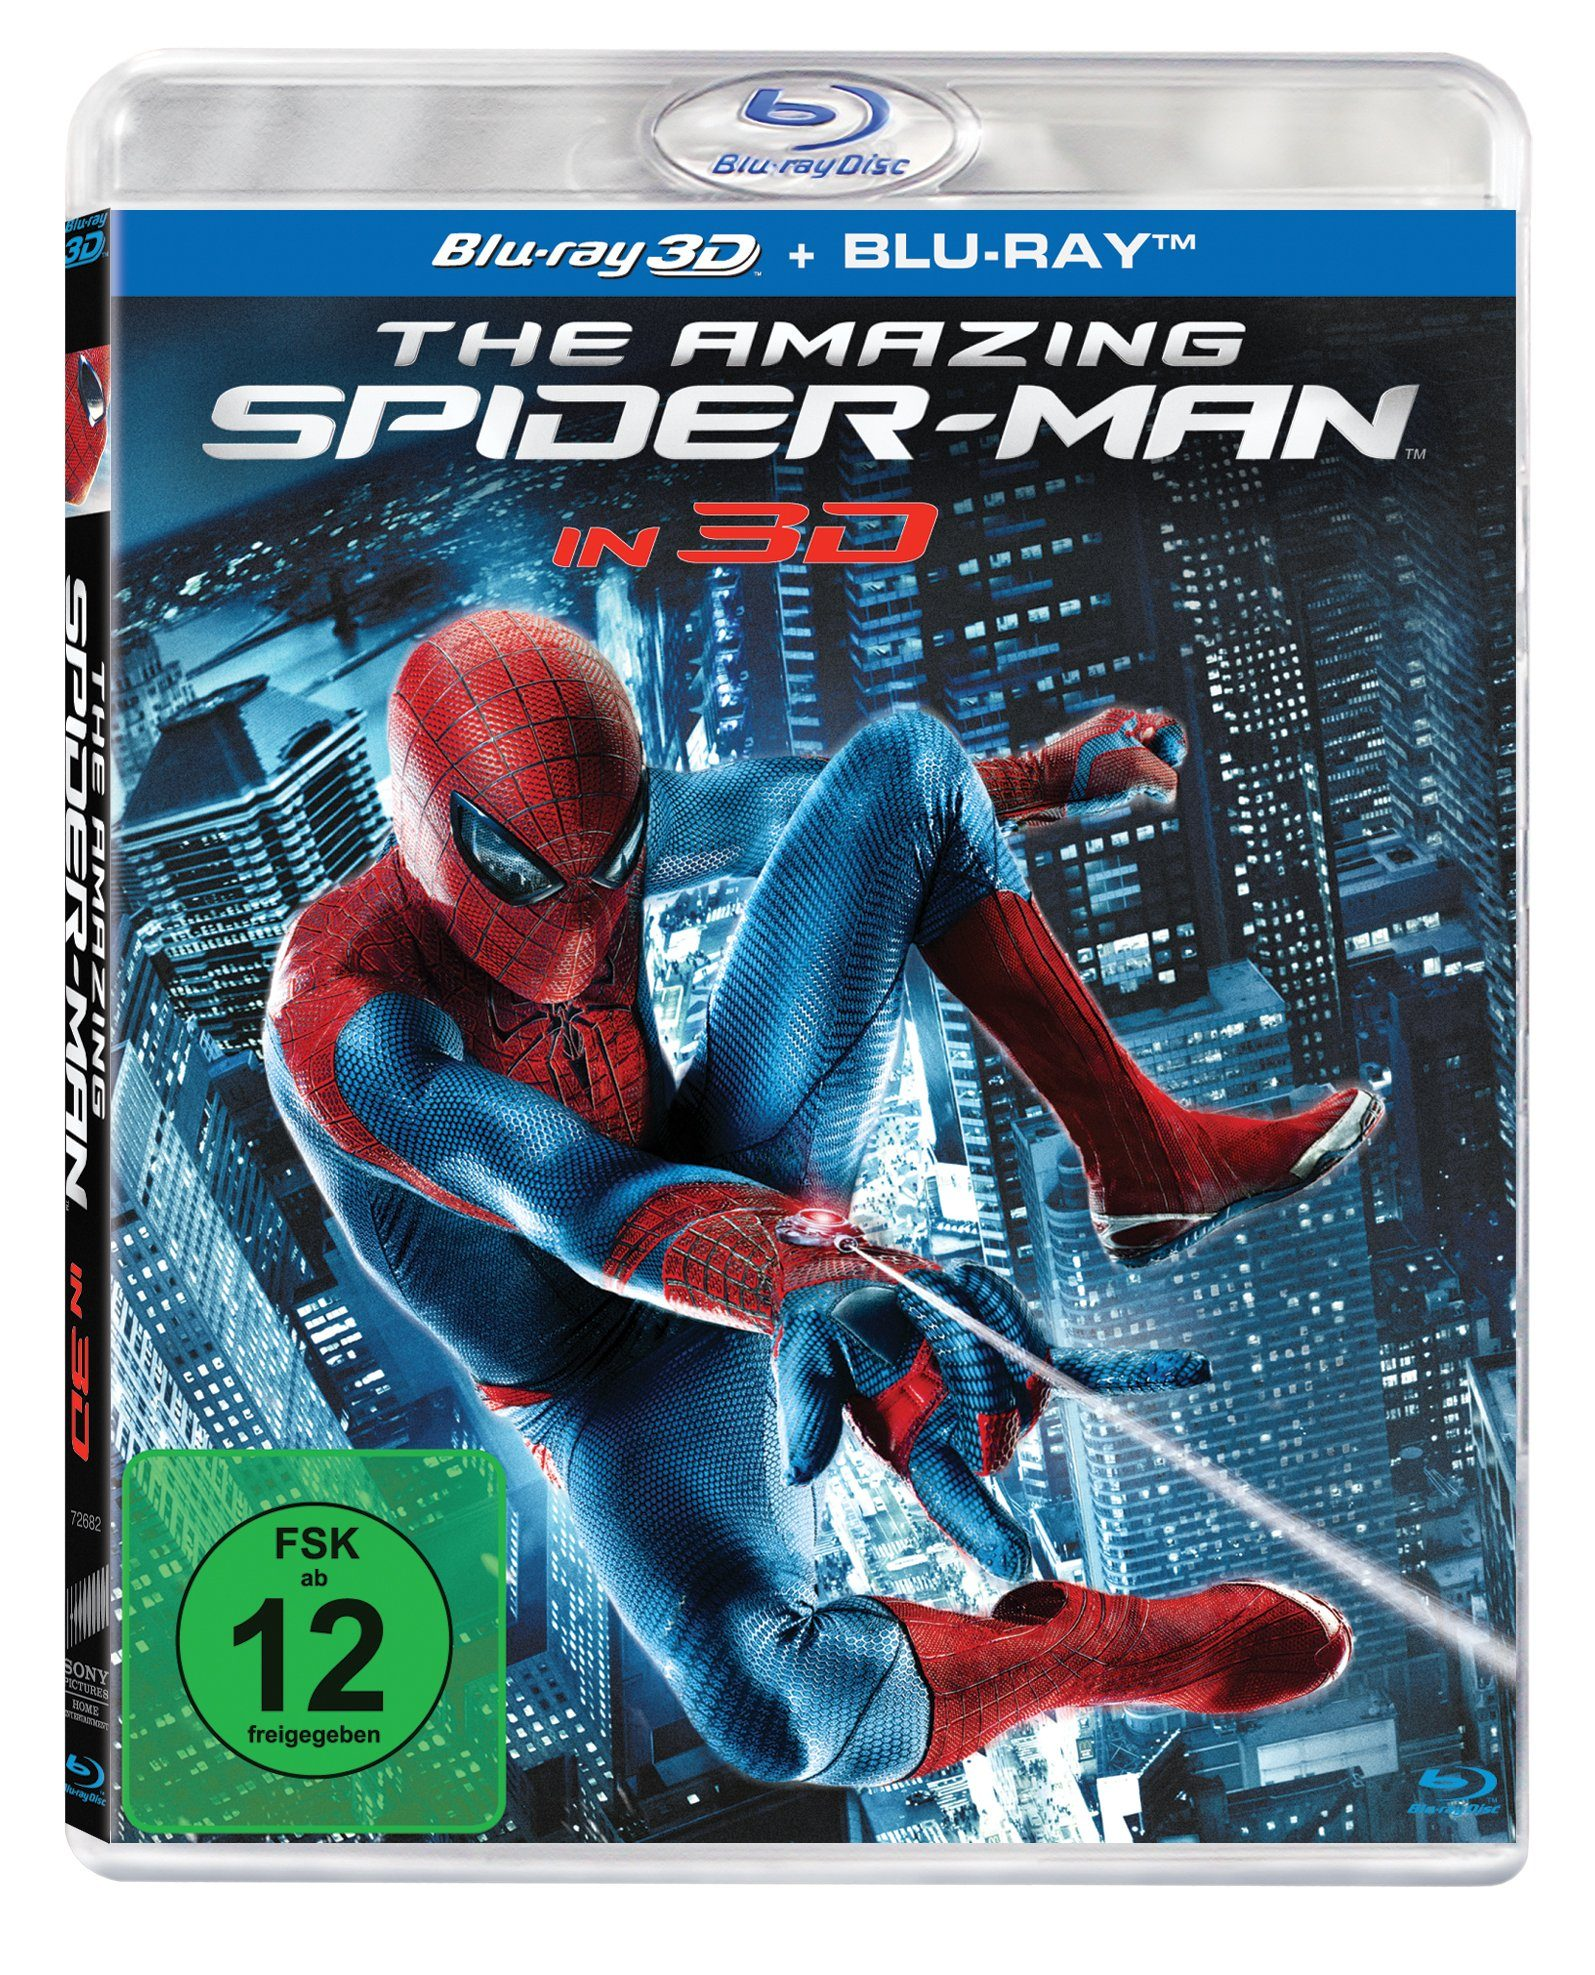 Sony Pictures Blu-ray »The Amazing Spider-Man 3D Version«